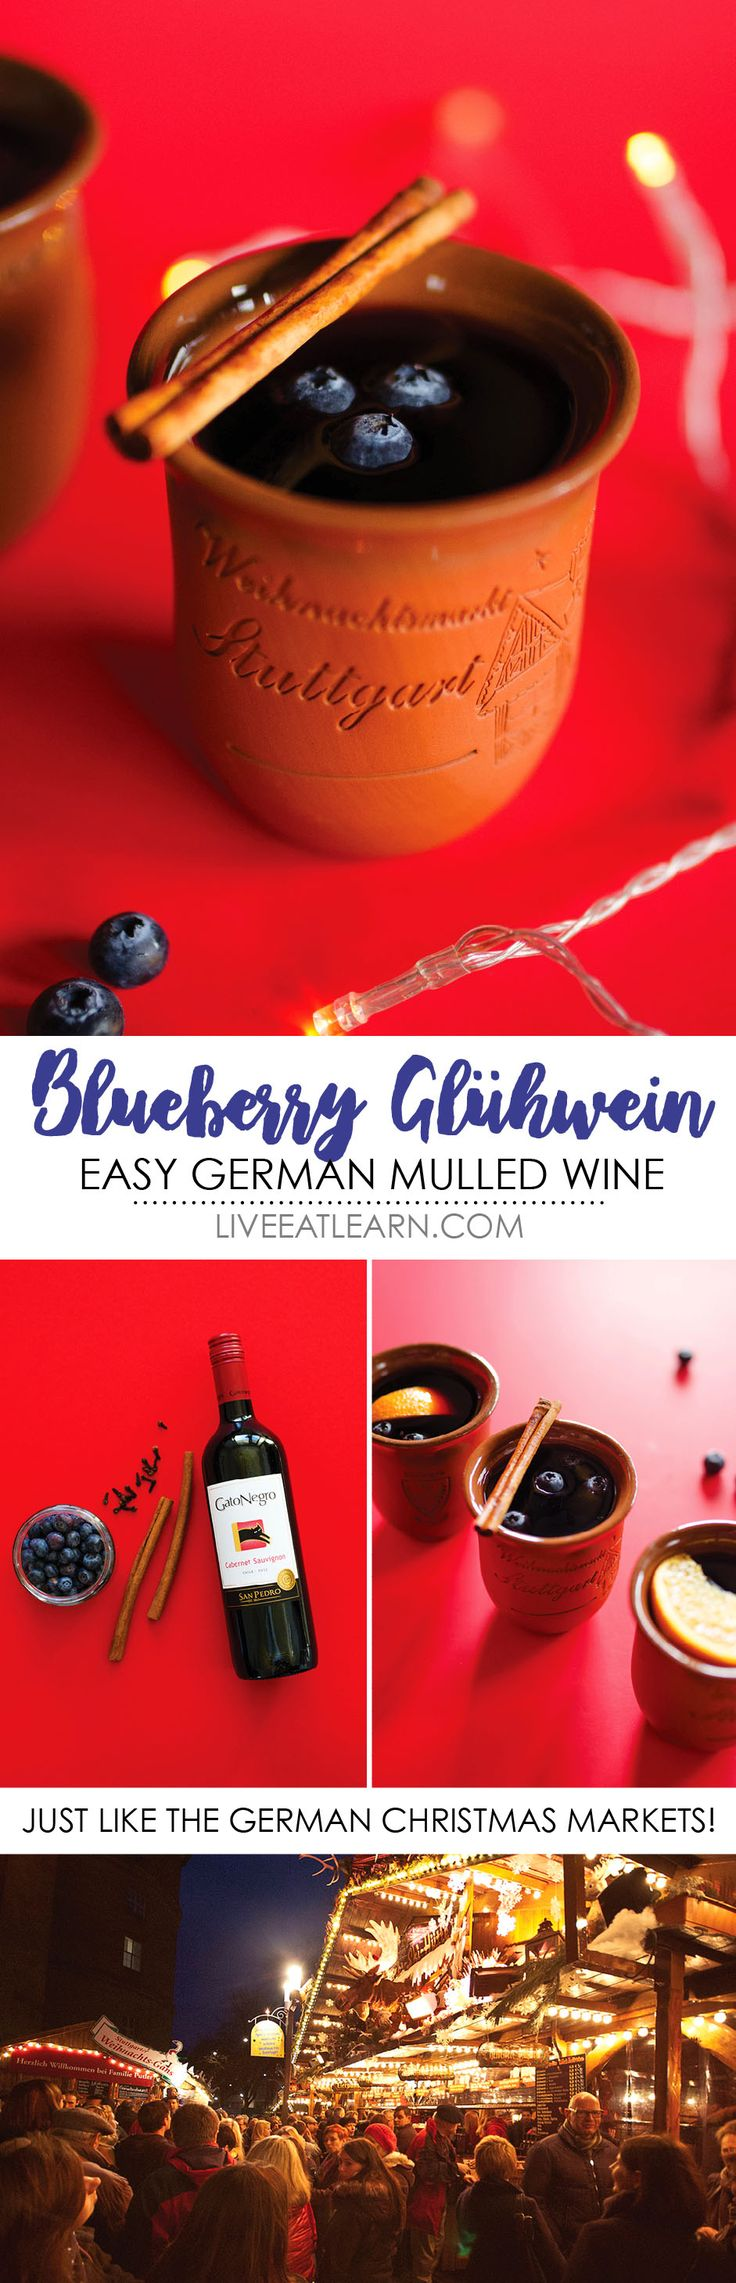 Experience the cozy German Christmas markets without ever leaving the comfort of your home with this Blueberry Gluhwein recipe! With only 5 ingredients, this is a simple alcoholic mulled red wine to warm your bones this winter. And you just need blueberries, cinnamon, and cloves to make this gluten-free, vegan gluehwein! // Live Eat Learn